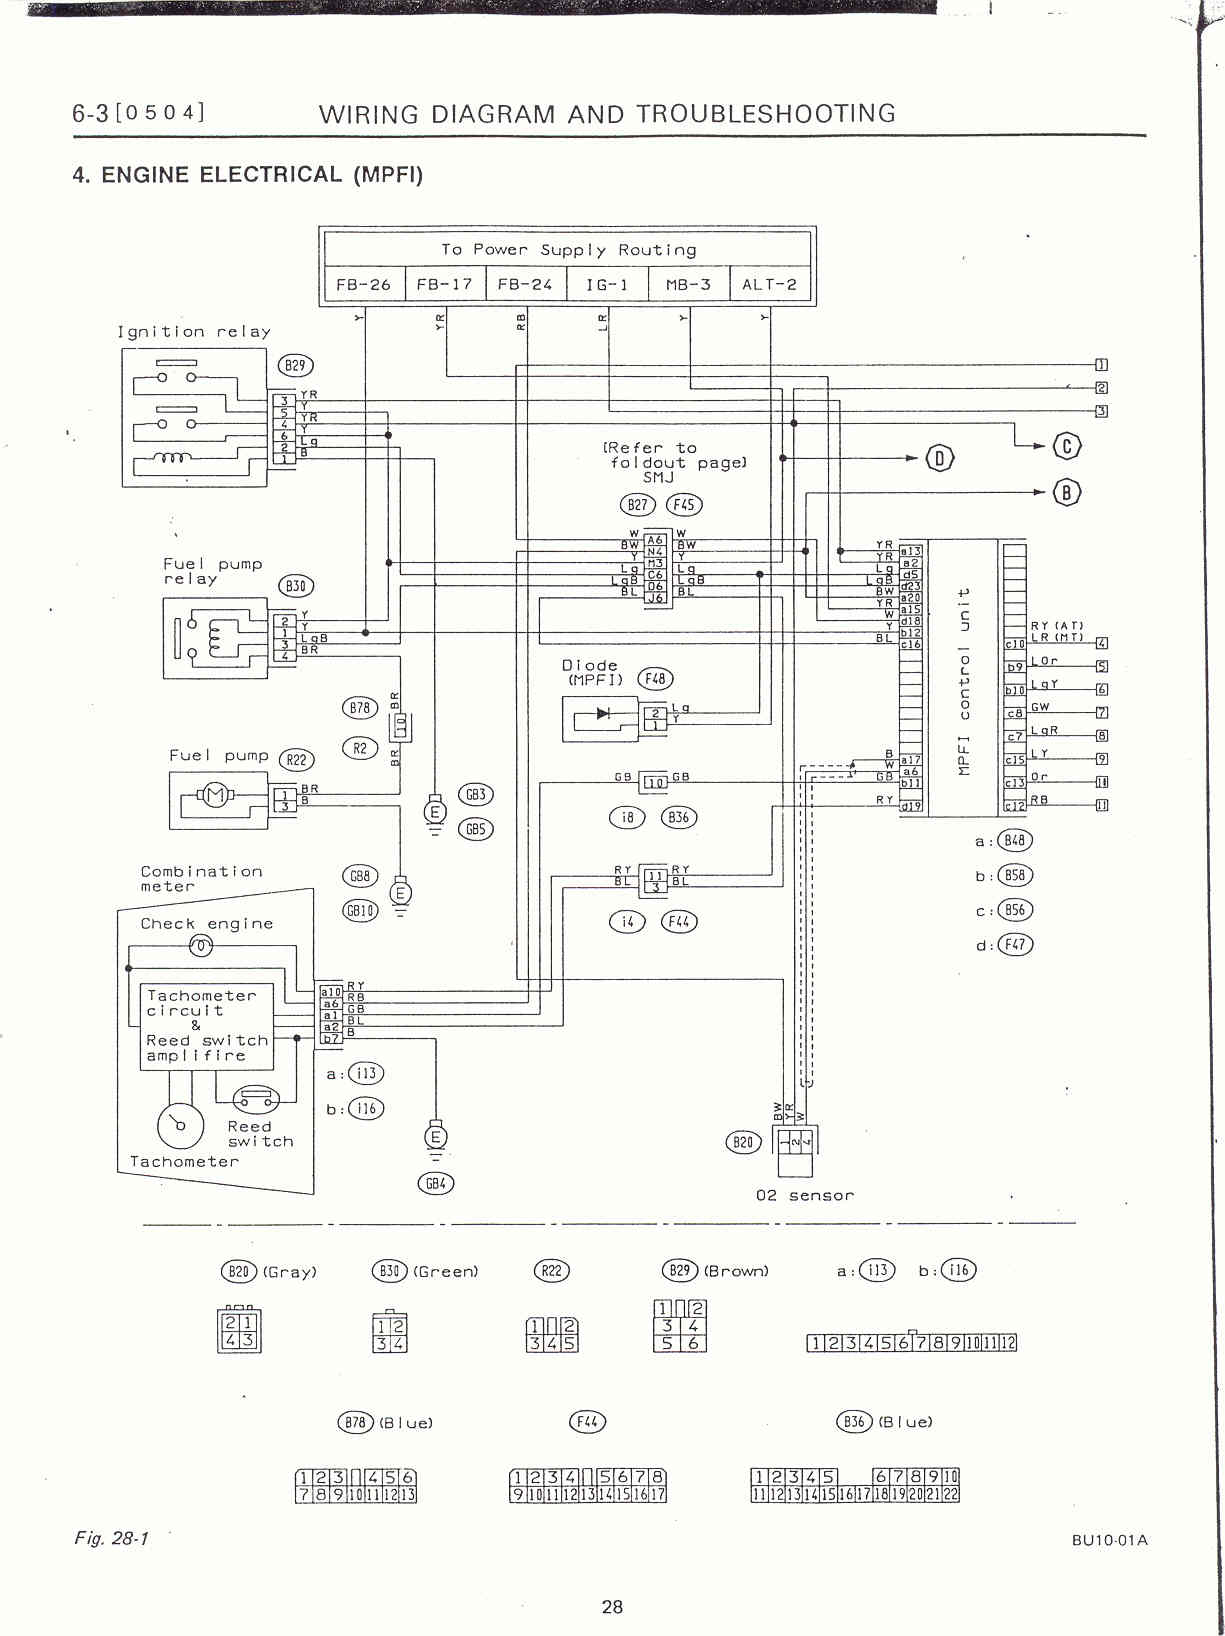 subaru svx wiring diagram subaru wiring diagrams online 6 3 engine electrical1 subaru wiring diagram